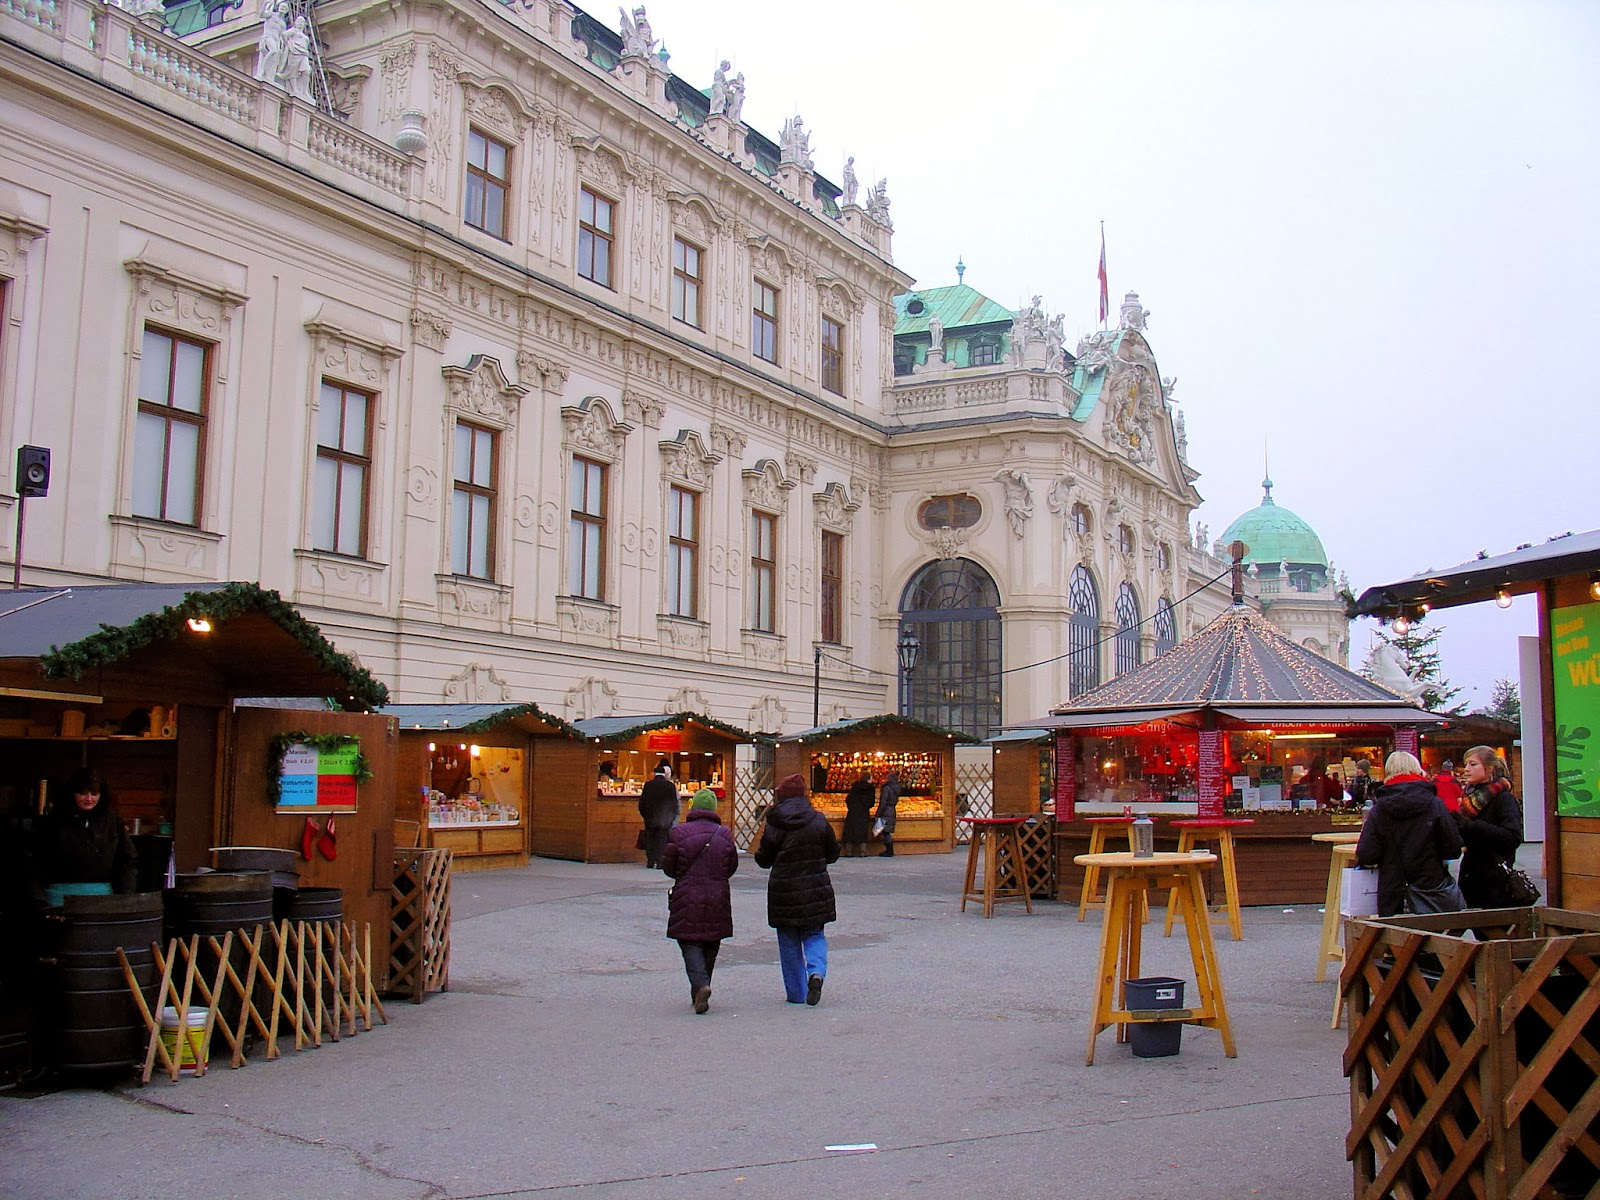 The Belvedere Palace and neighboring Christmas market in Vienna, Austria.